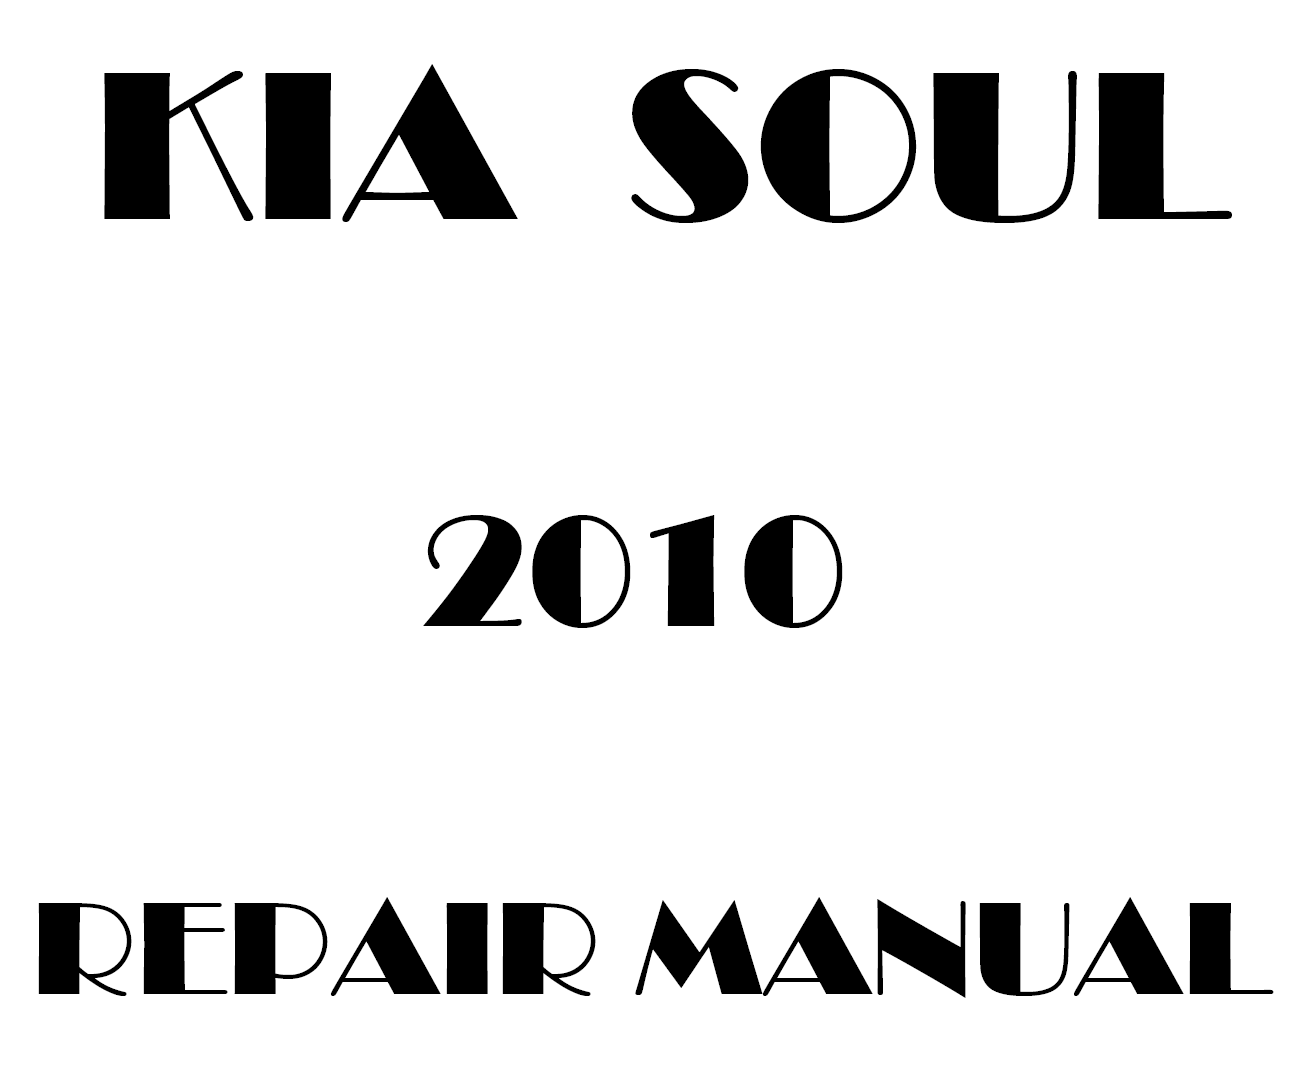 2010 Kia Soul repair manual